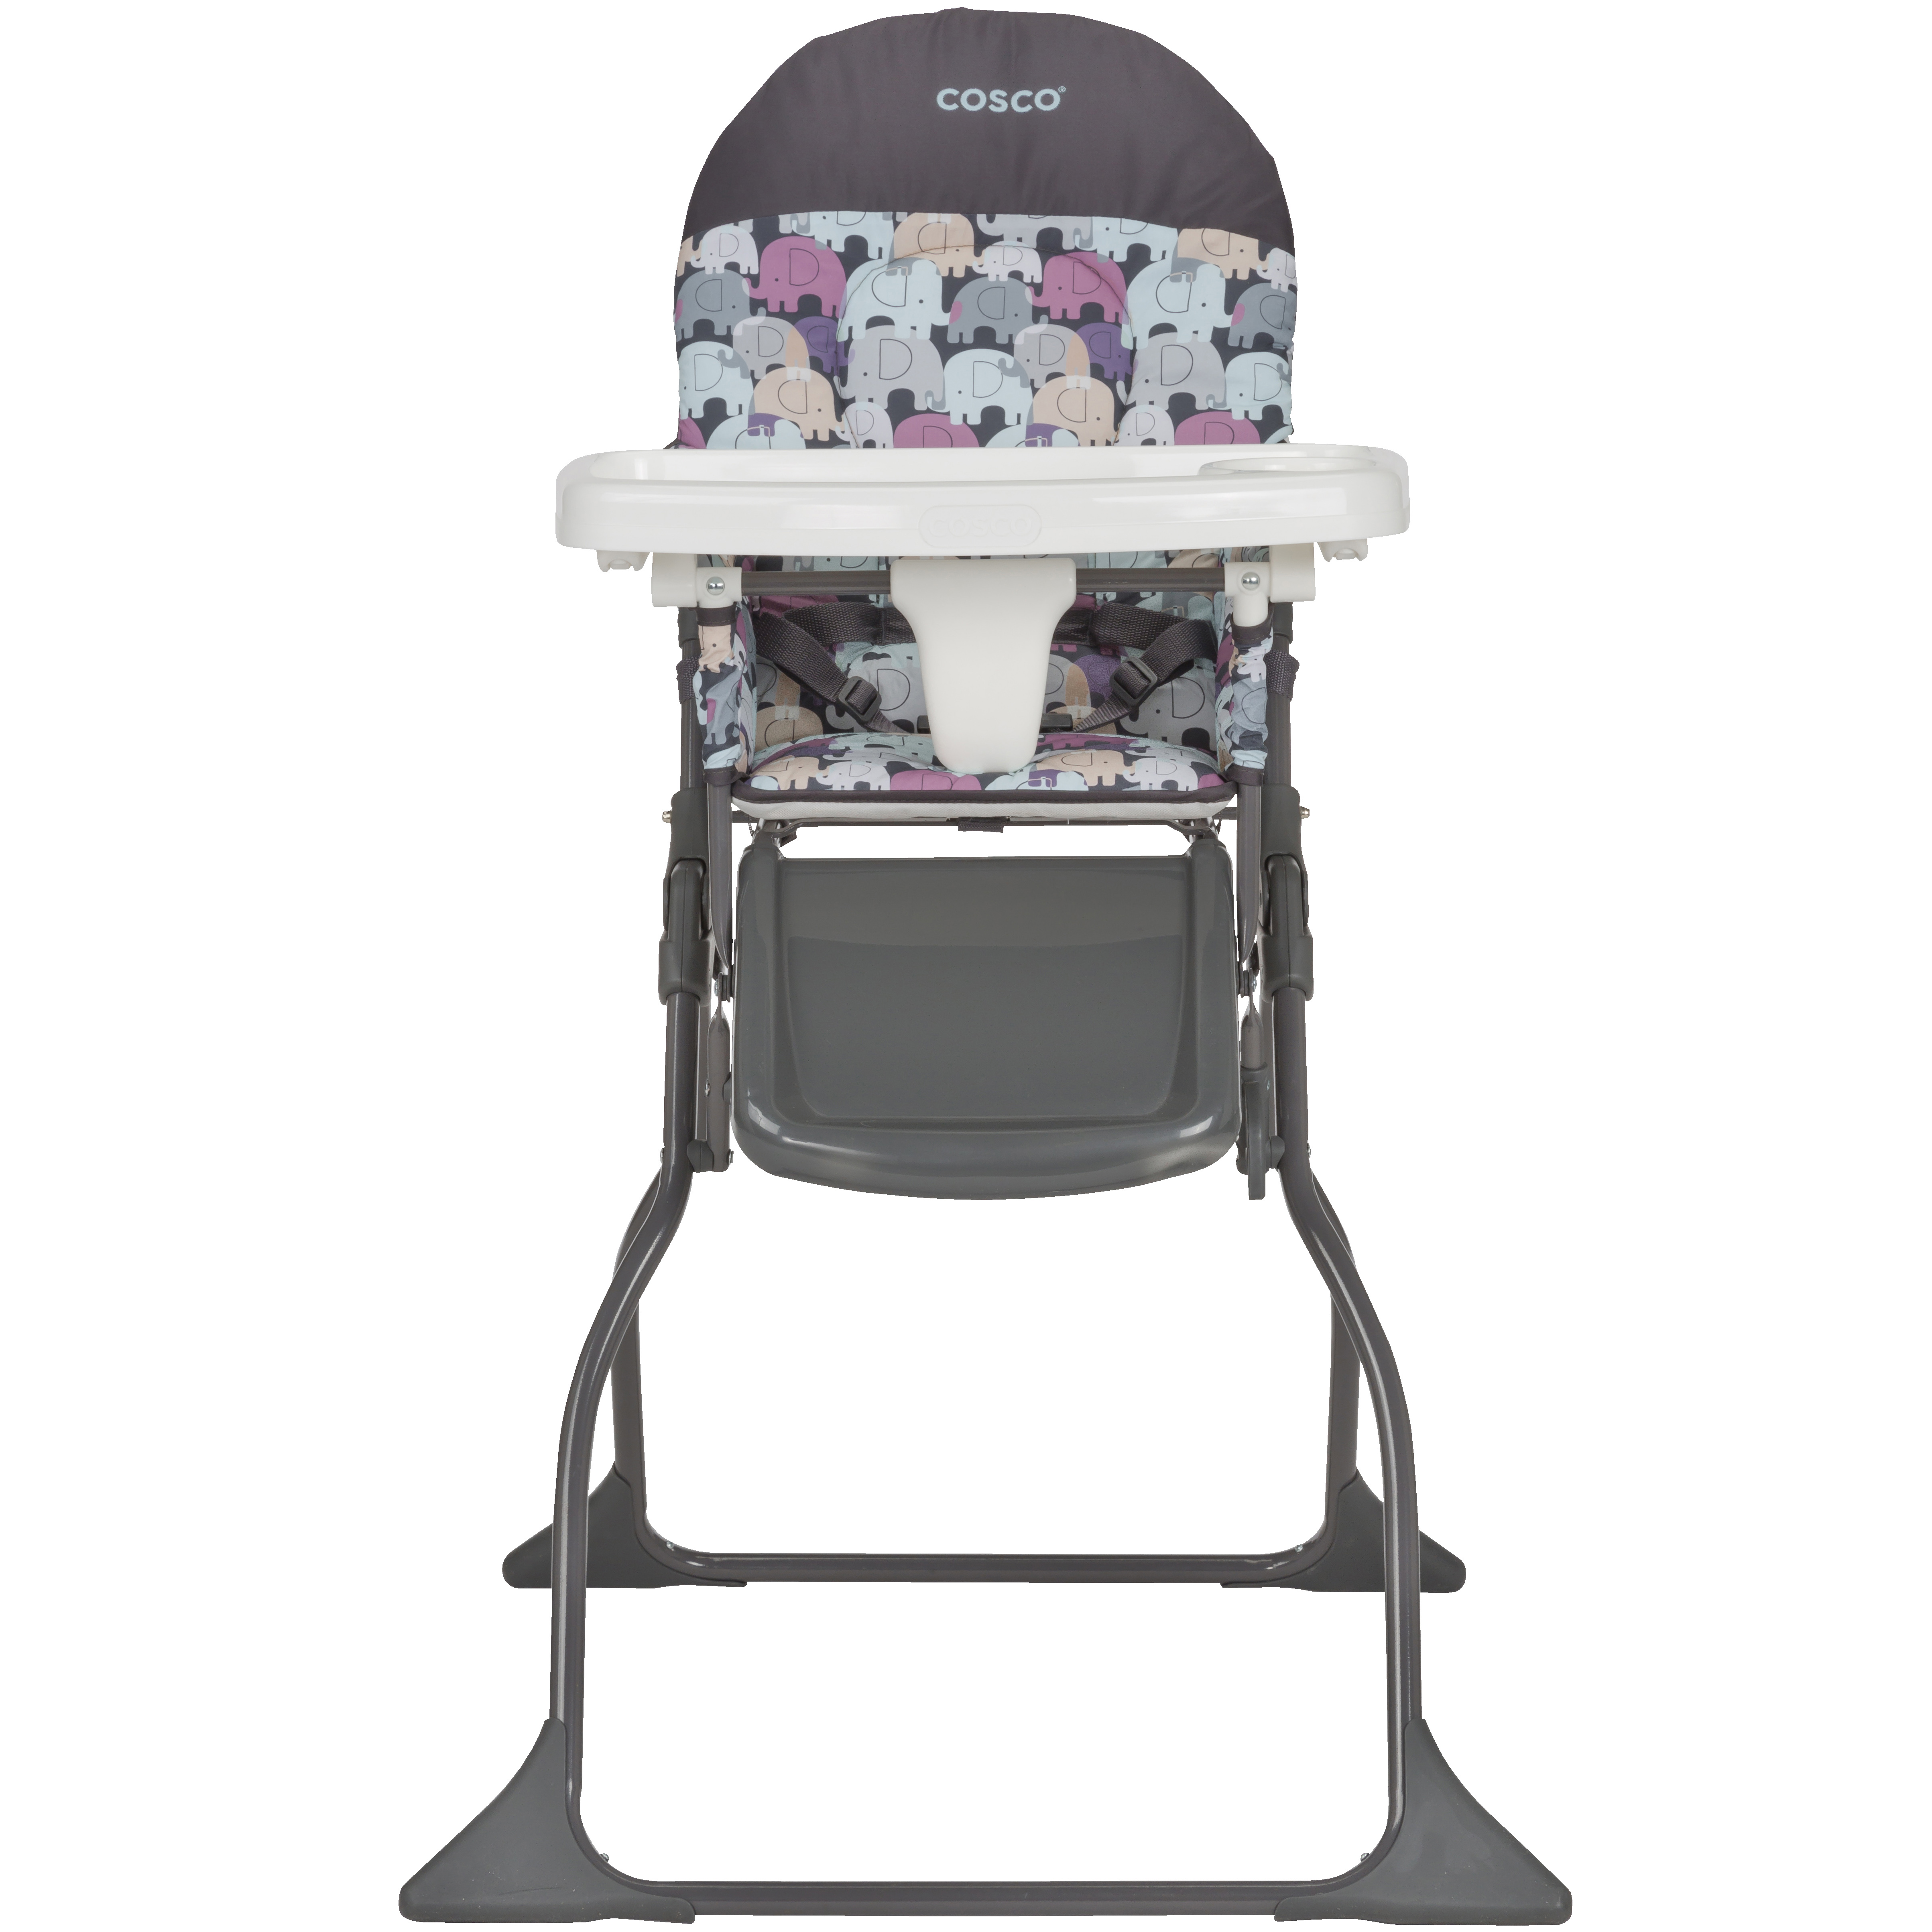 Cosco Simple Fold Full Size High Chair with Adjustable Tray, Elephant Puzzle